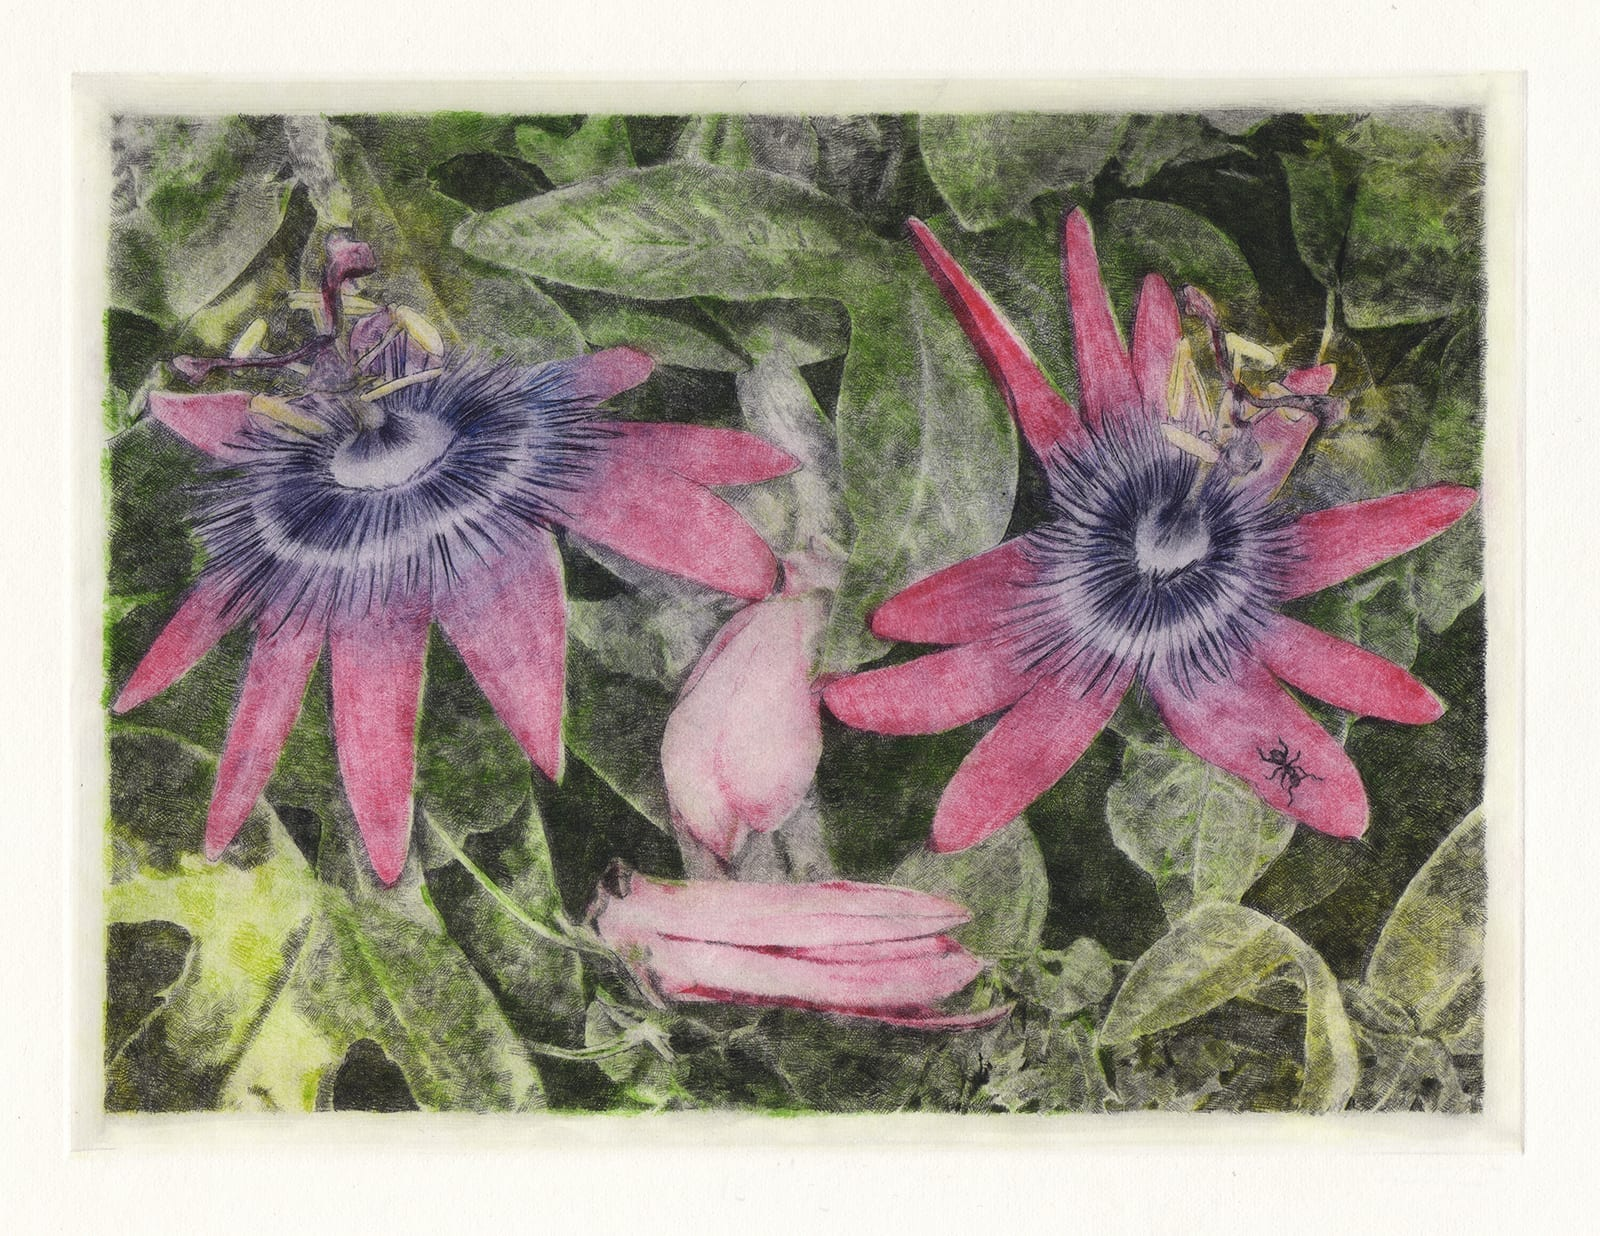 Laughing flowers: Passion flower (drypoint etching by Yaemi Shigyo)